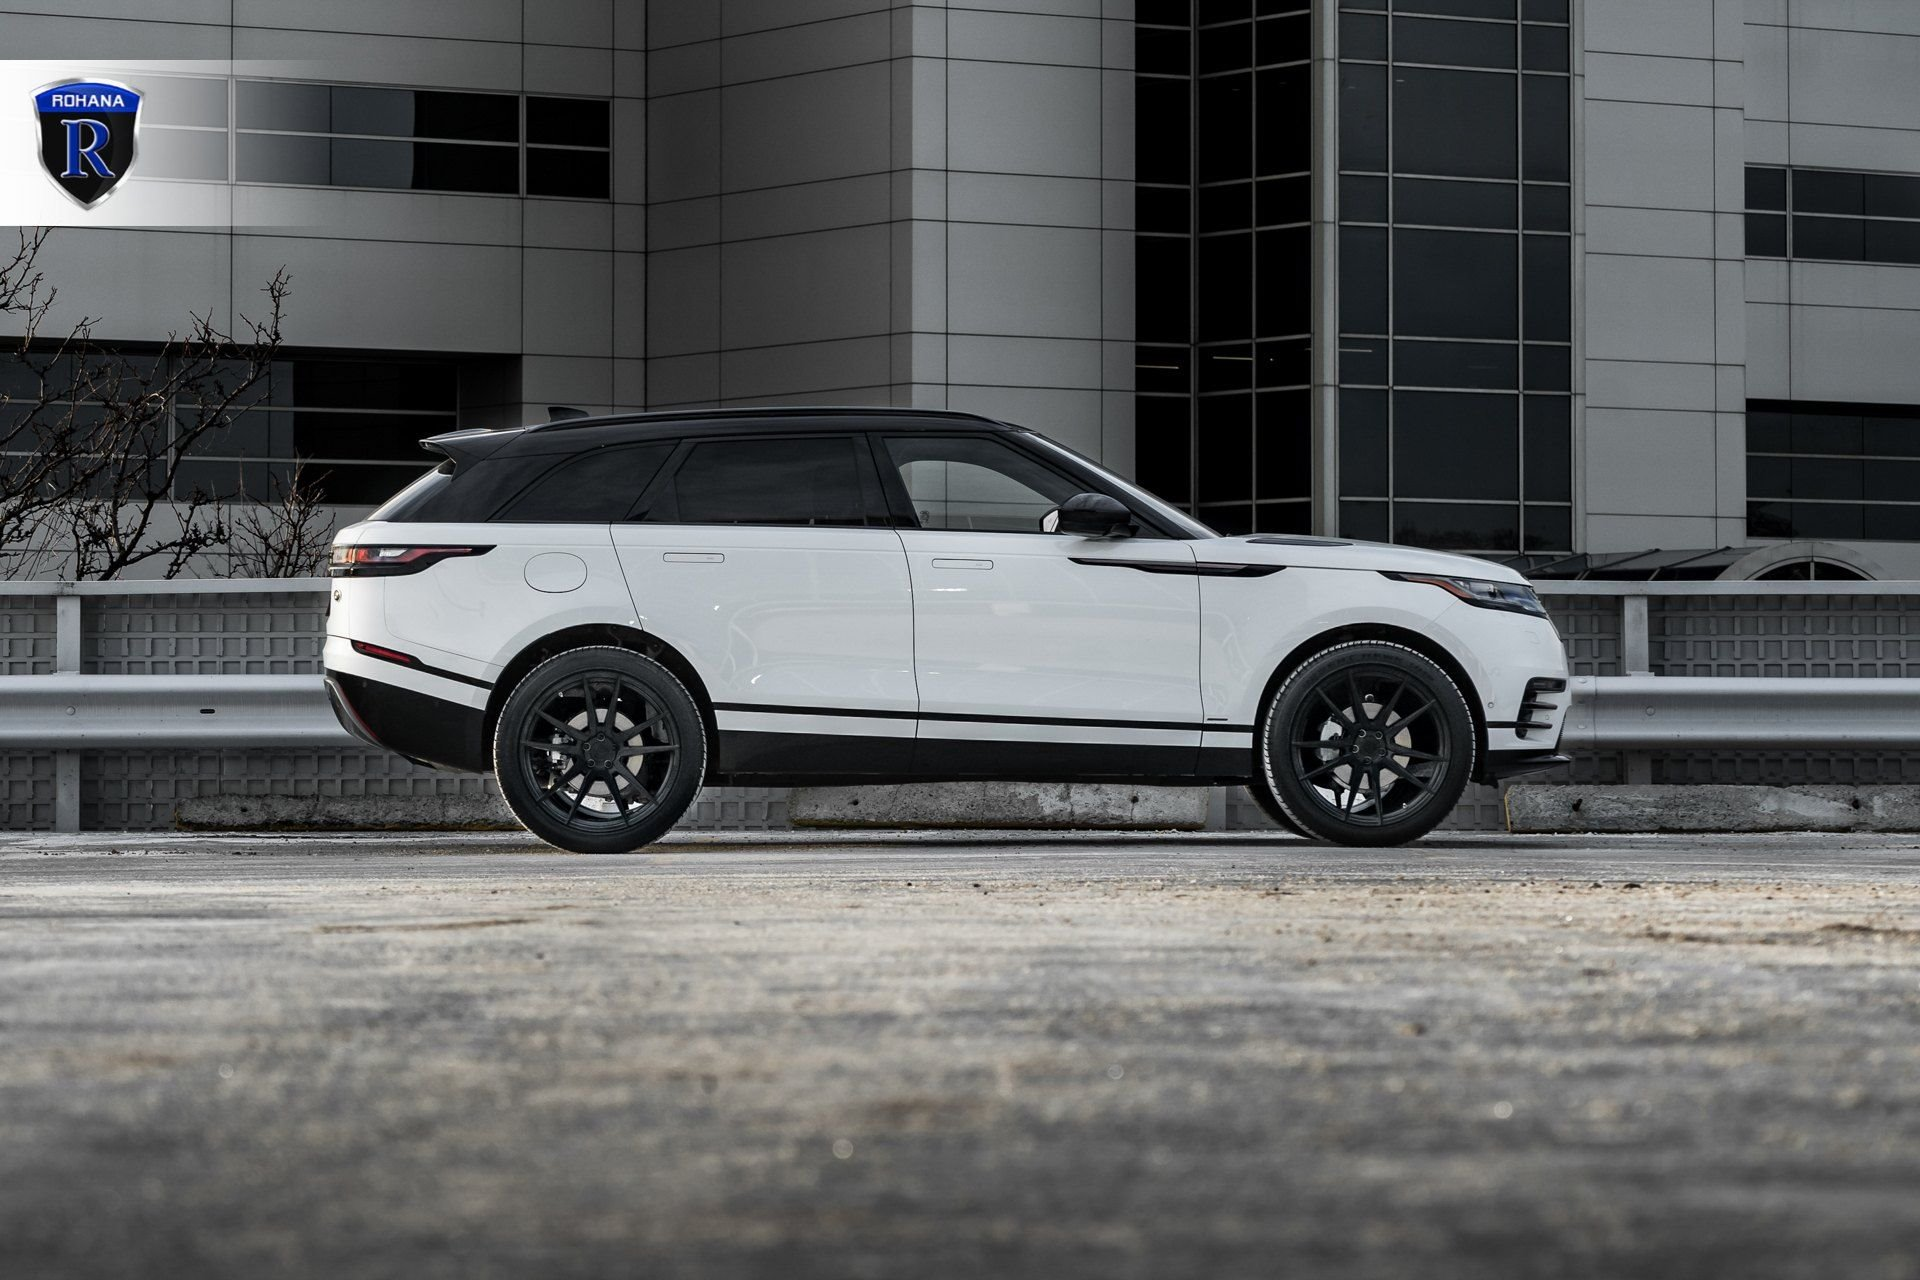 New 2019 Land Rover-Range Rover Velar Range Rover Velar P250 S for sale $54,700 at M and V Leasing in Brooklyn NY 11223 1